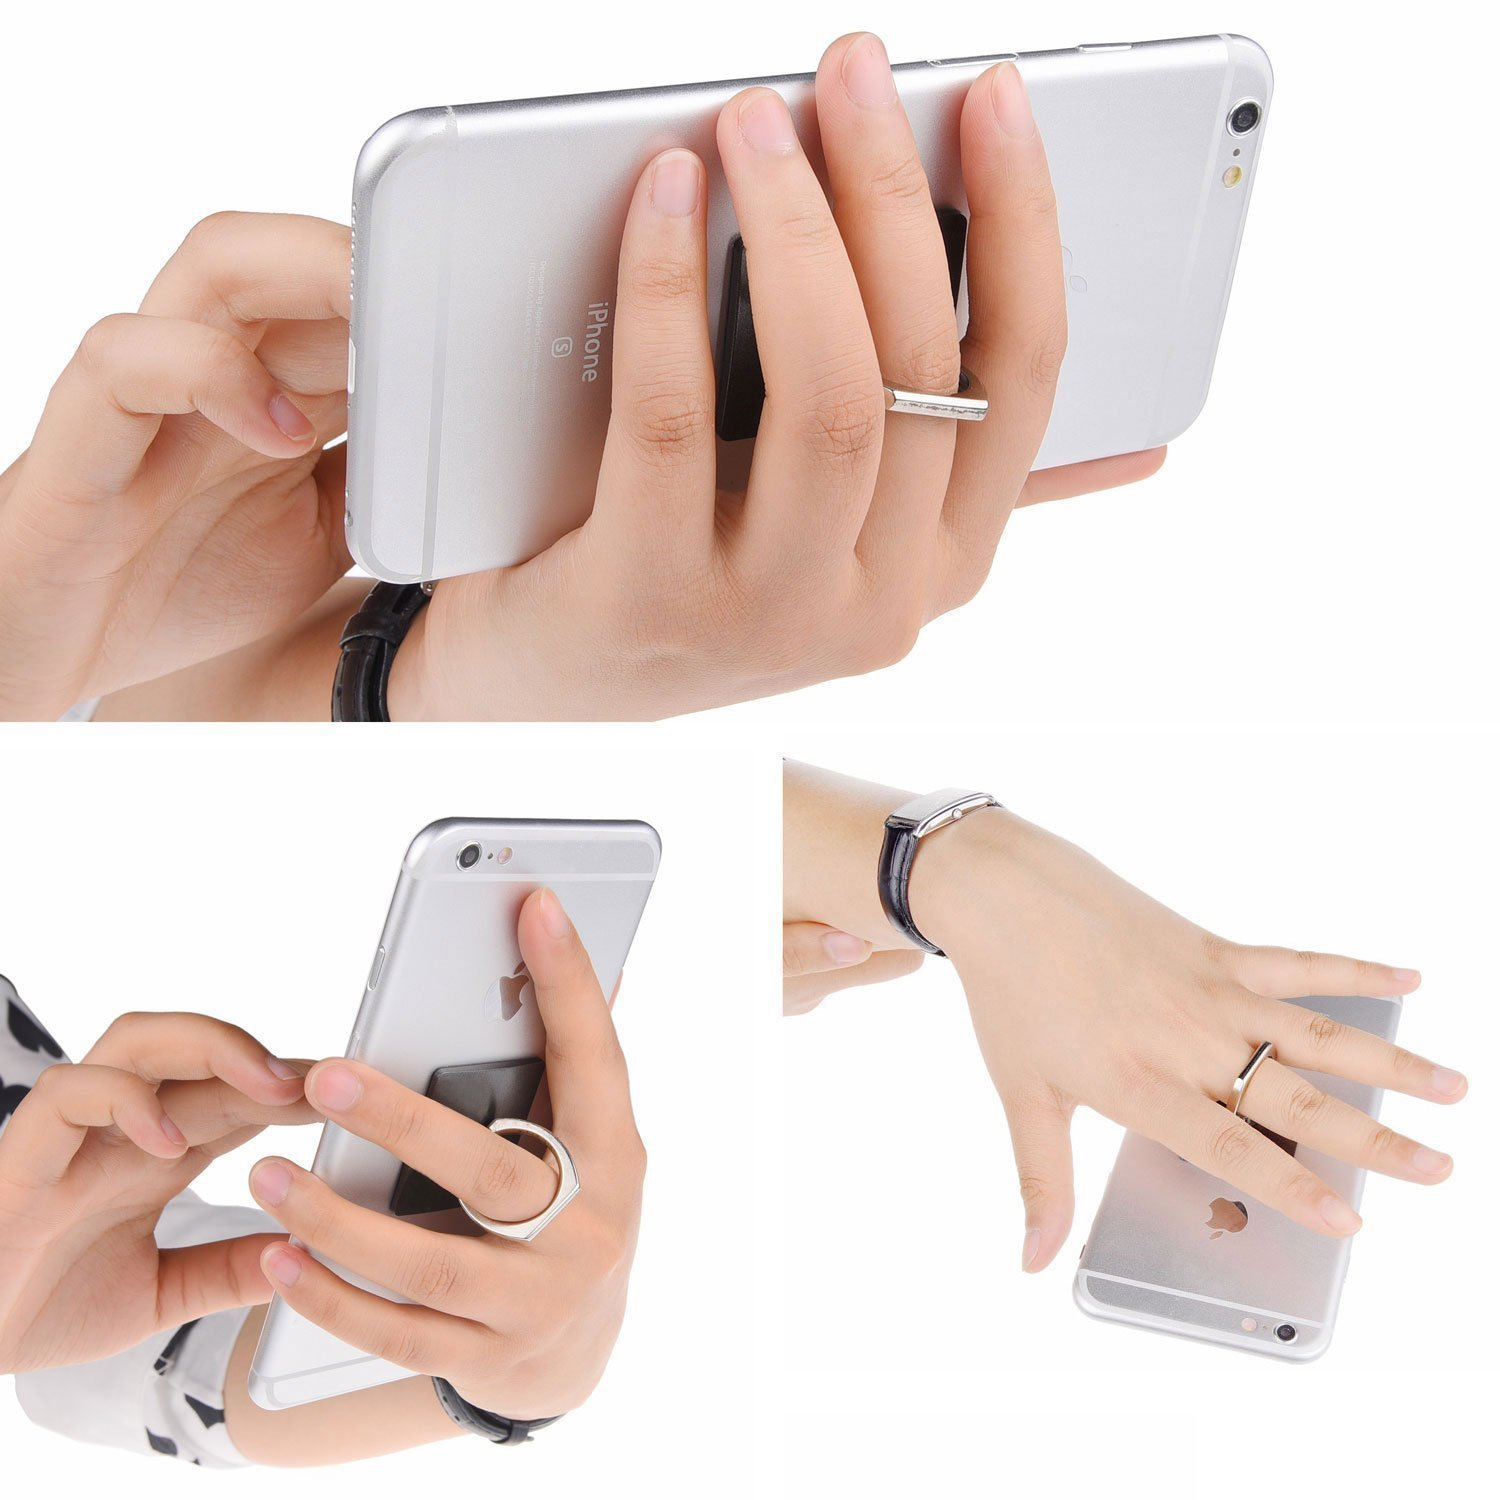 Phone Ring Grip & Stand - 2in1 - 2 Pieces, with Car Mount - For all Phones/Tablets with a Flat Rear Surface - 360 Rotate - Never Drop Your by Trenro (Image #3)